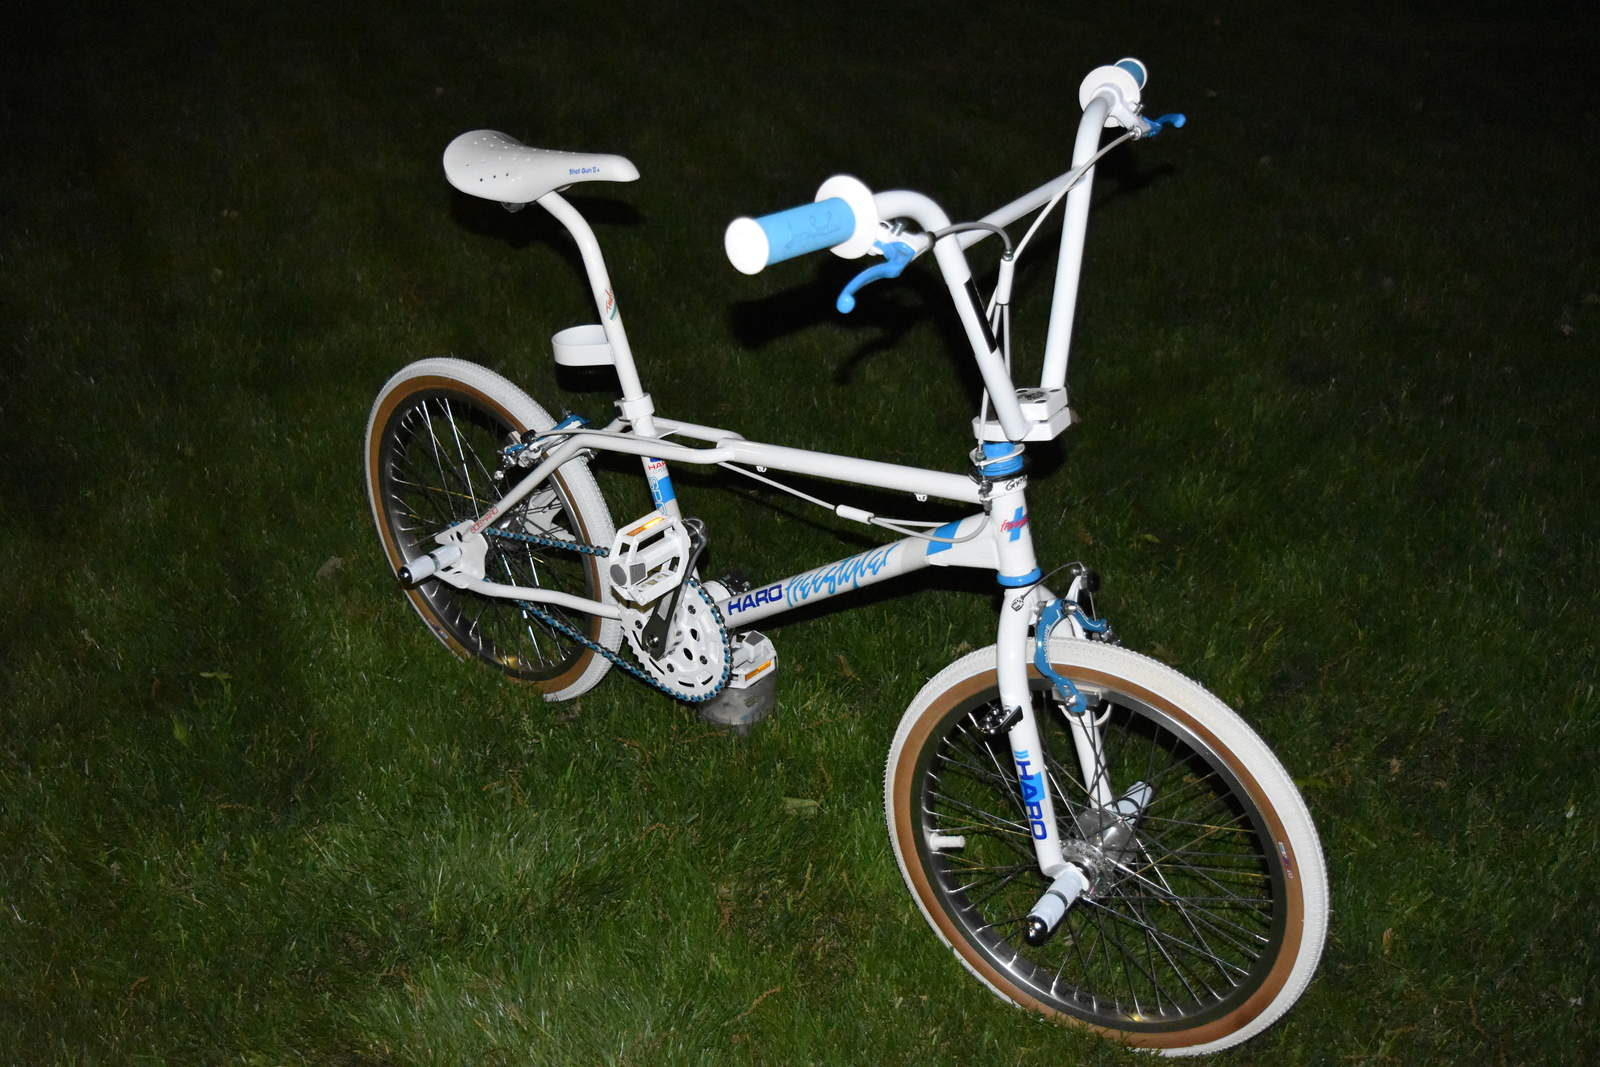 https://s3.amazonaws.com/uploads.bmxmuseum.com/user-images/210784/dsc_01805ce9cd31a2.jpg